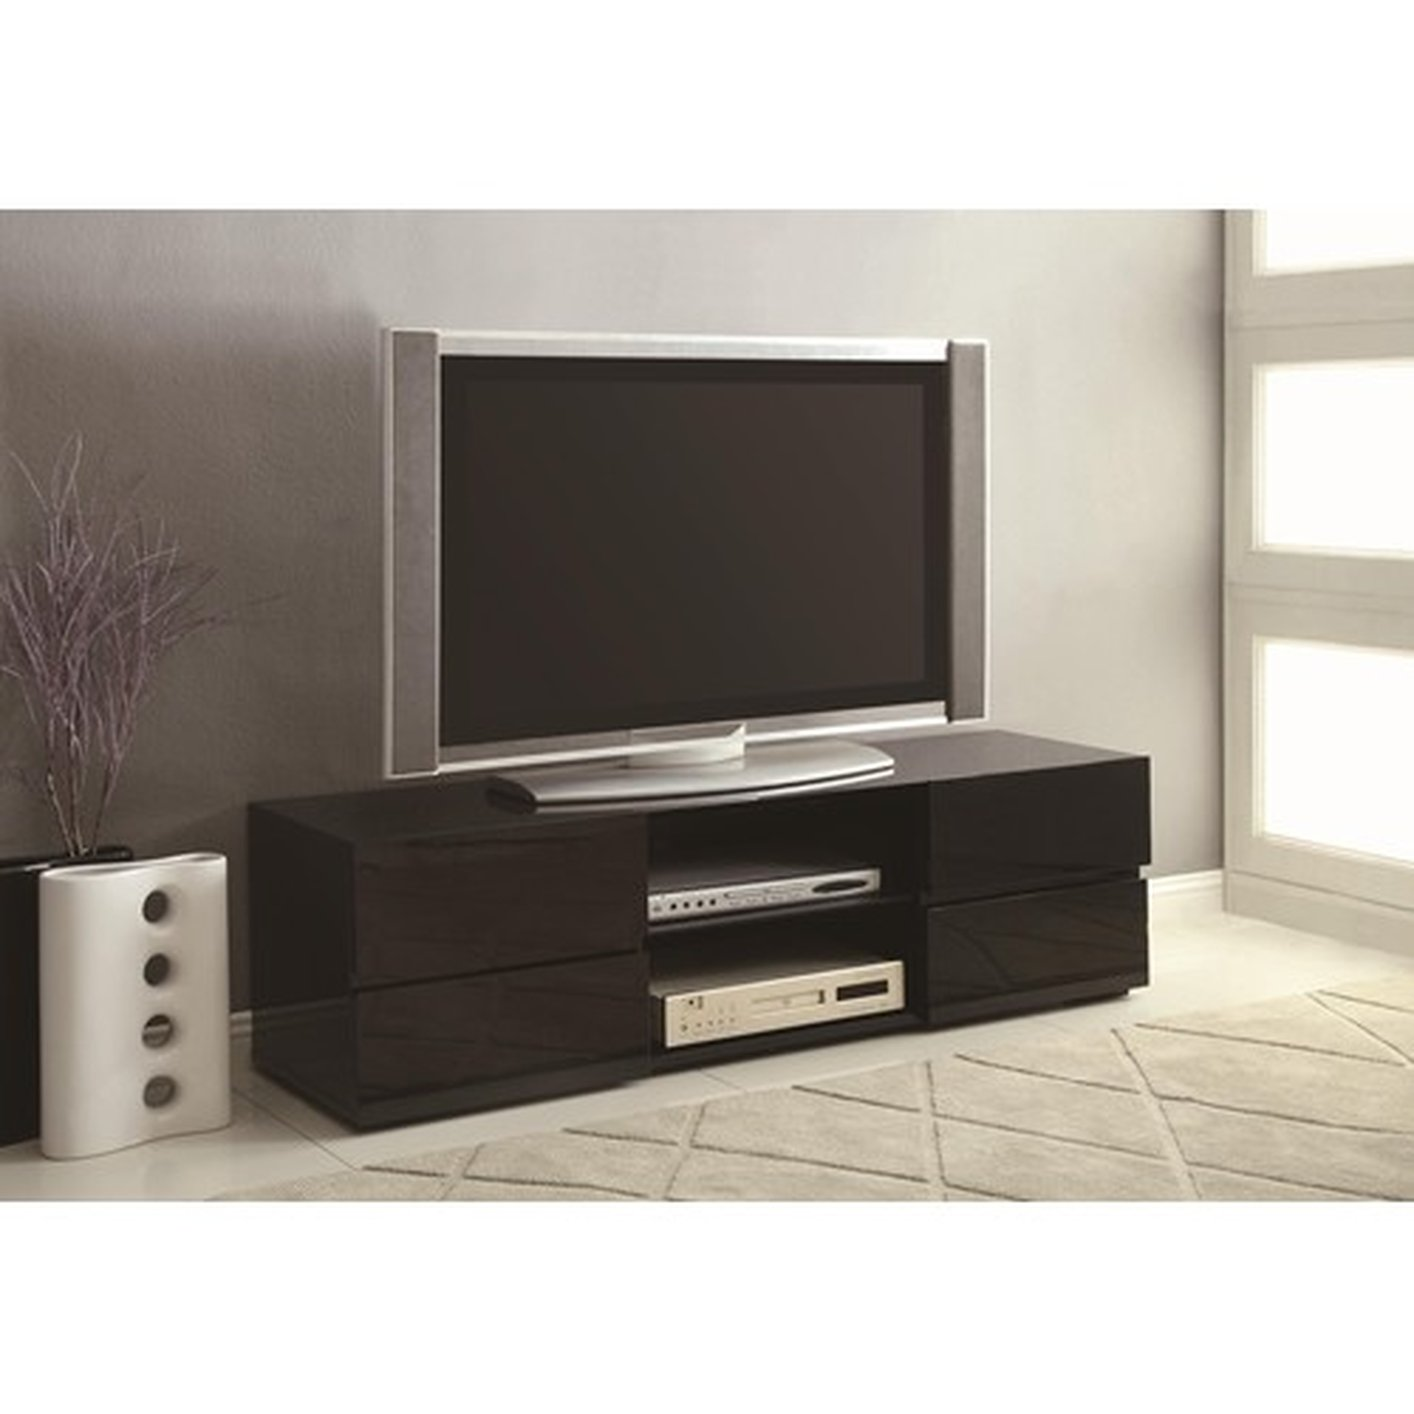 Coaster 700841 Black Wood TV Stand - Steal-A-Sofa Furniture Outlet Los ...